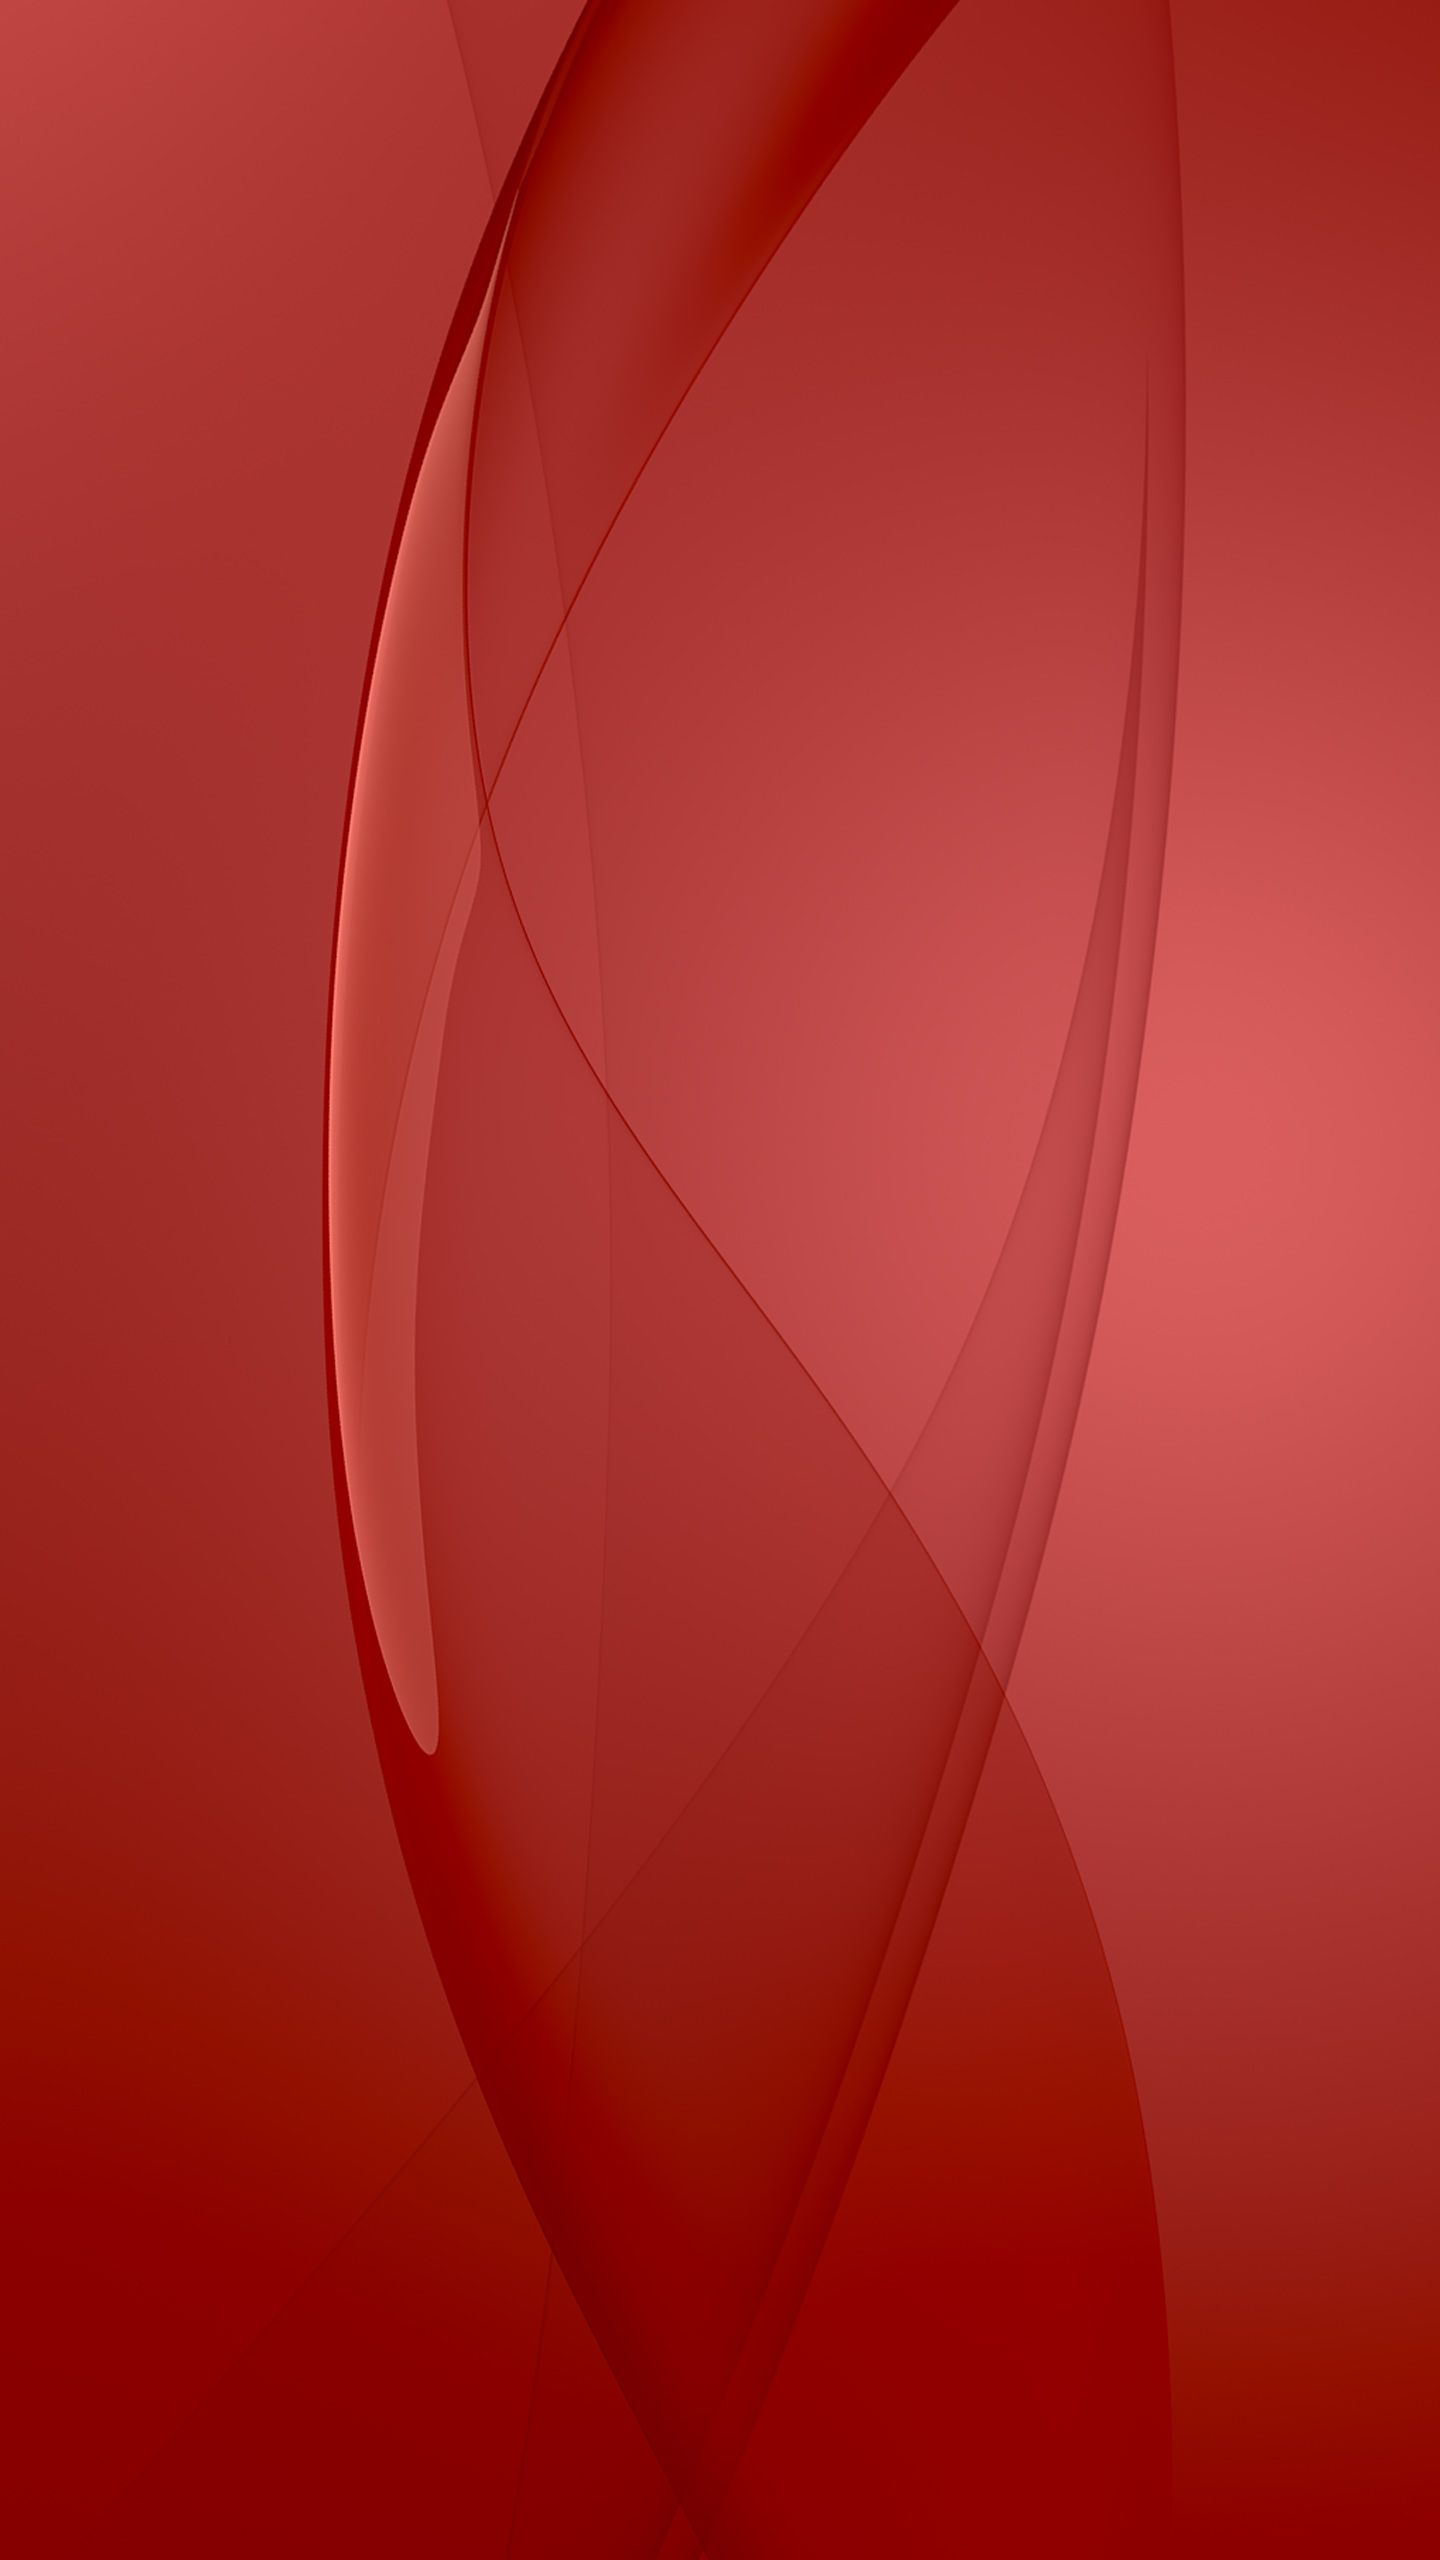 Red-Abstract-Mobile-http-and-backgrounds-net-red-abstract-mobile-wallpaper-wpc9208261